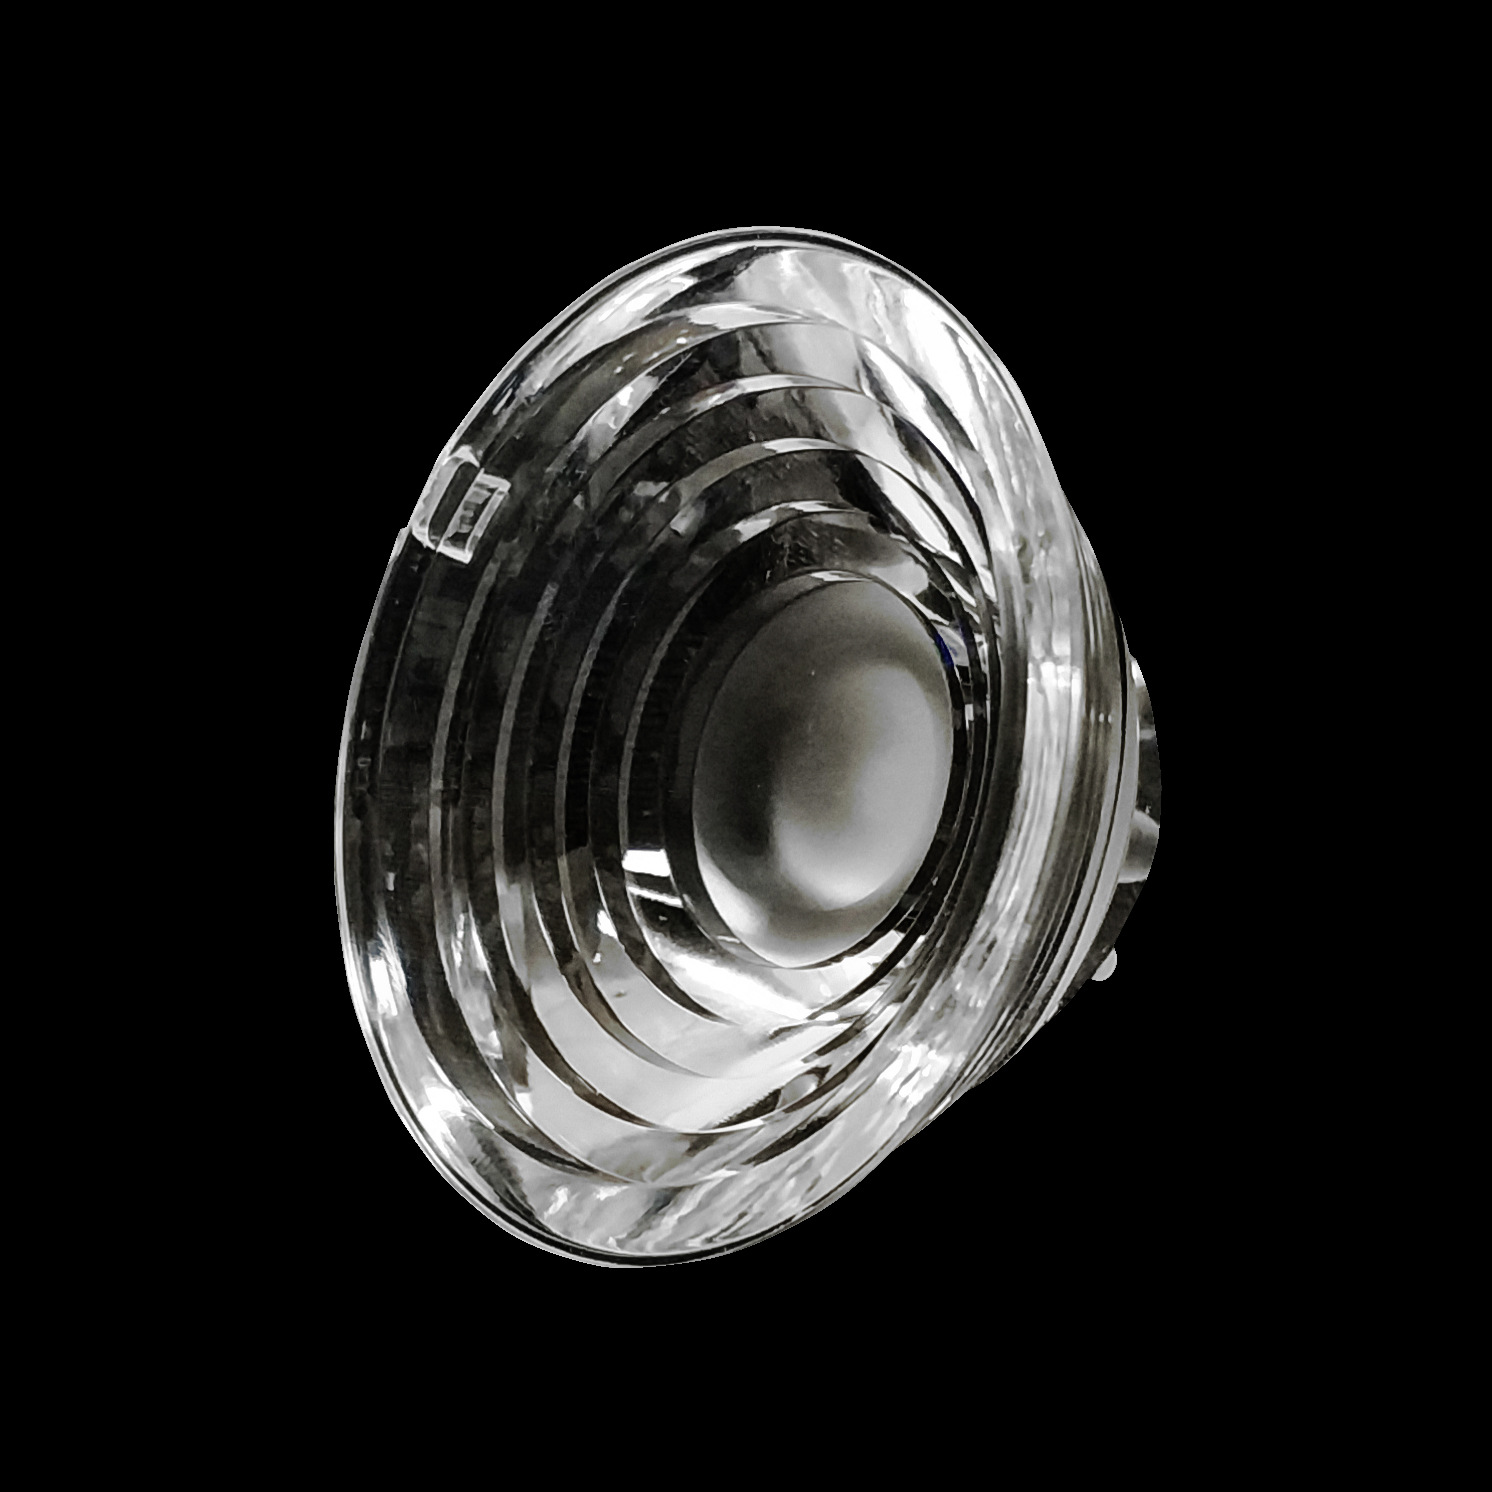 48mm Diameter LED Lens Concave Water Clear Lens For CREE XPE 3535